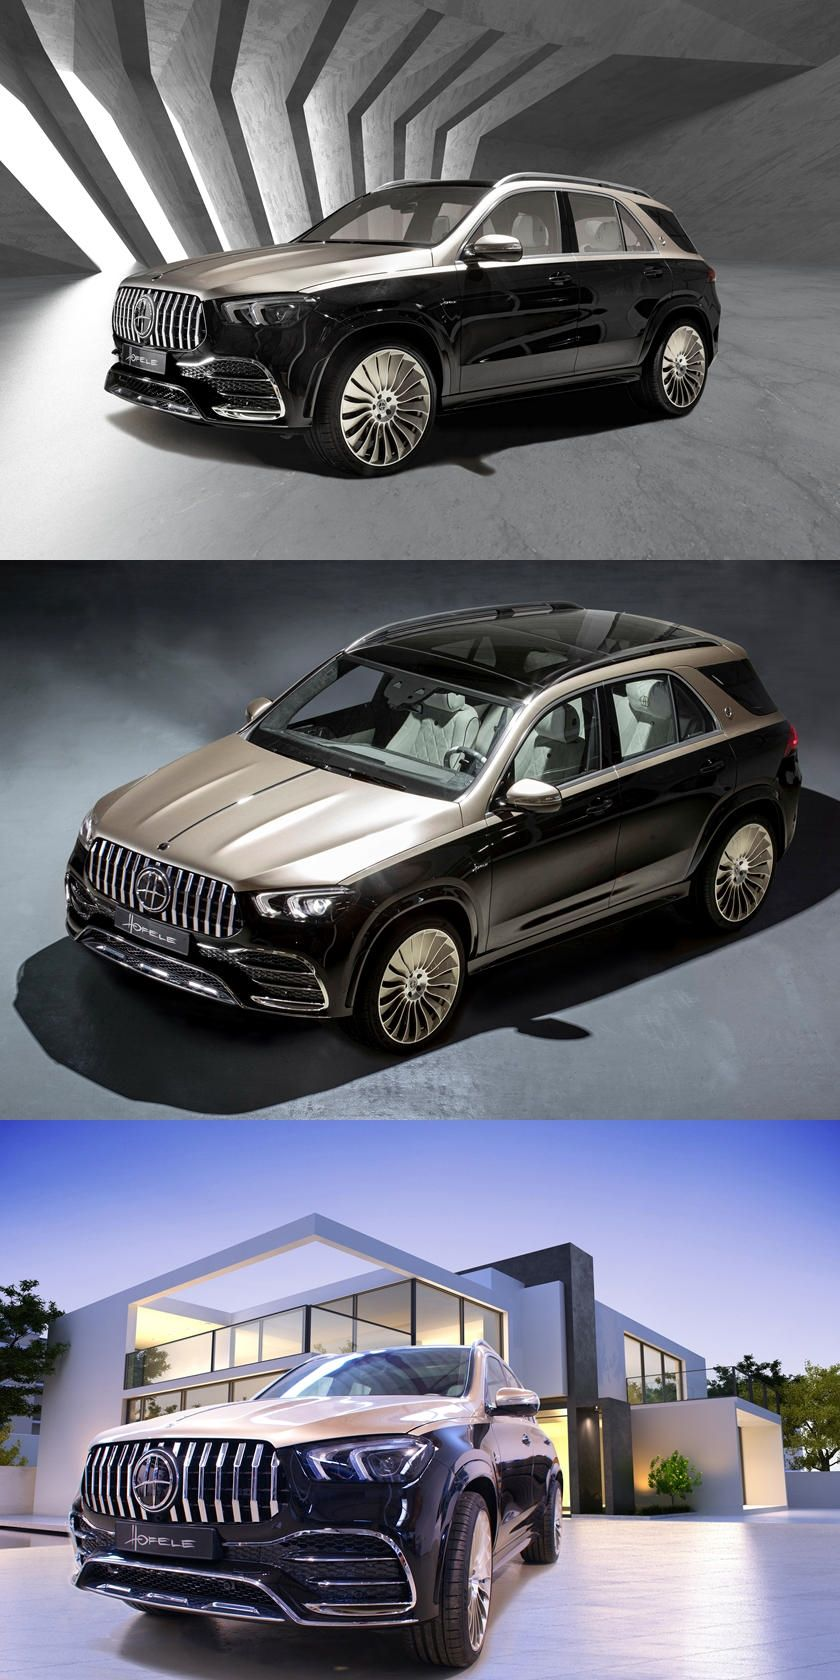 This Mercedes Benz Gle Is A Wannabe Maybach Suv It Has The Interior Of A Royal Palace Mercedes Benz Gle Mercedes Benz Cars Mercedes Benz Maybach